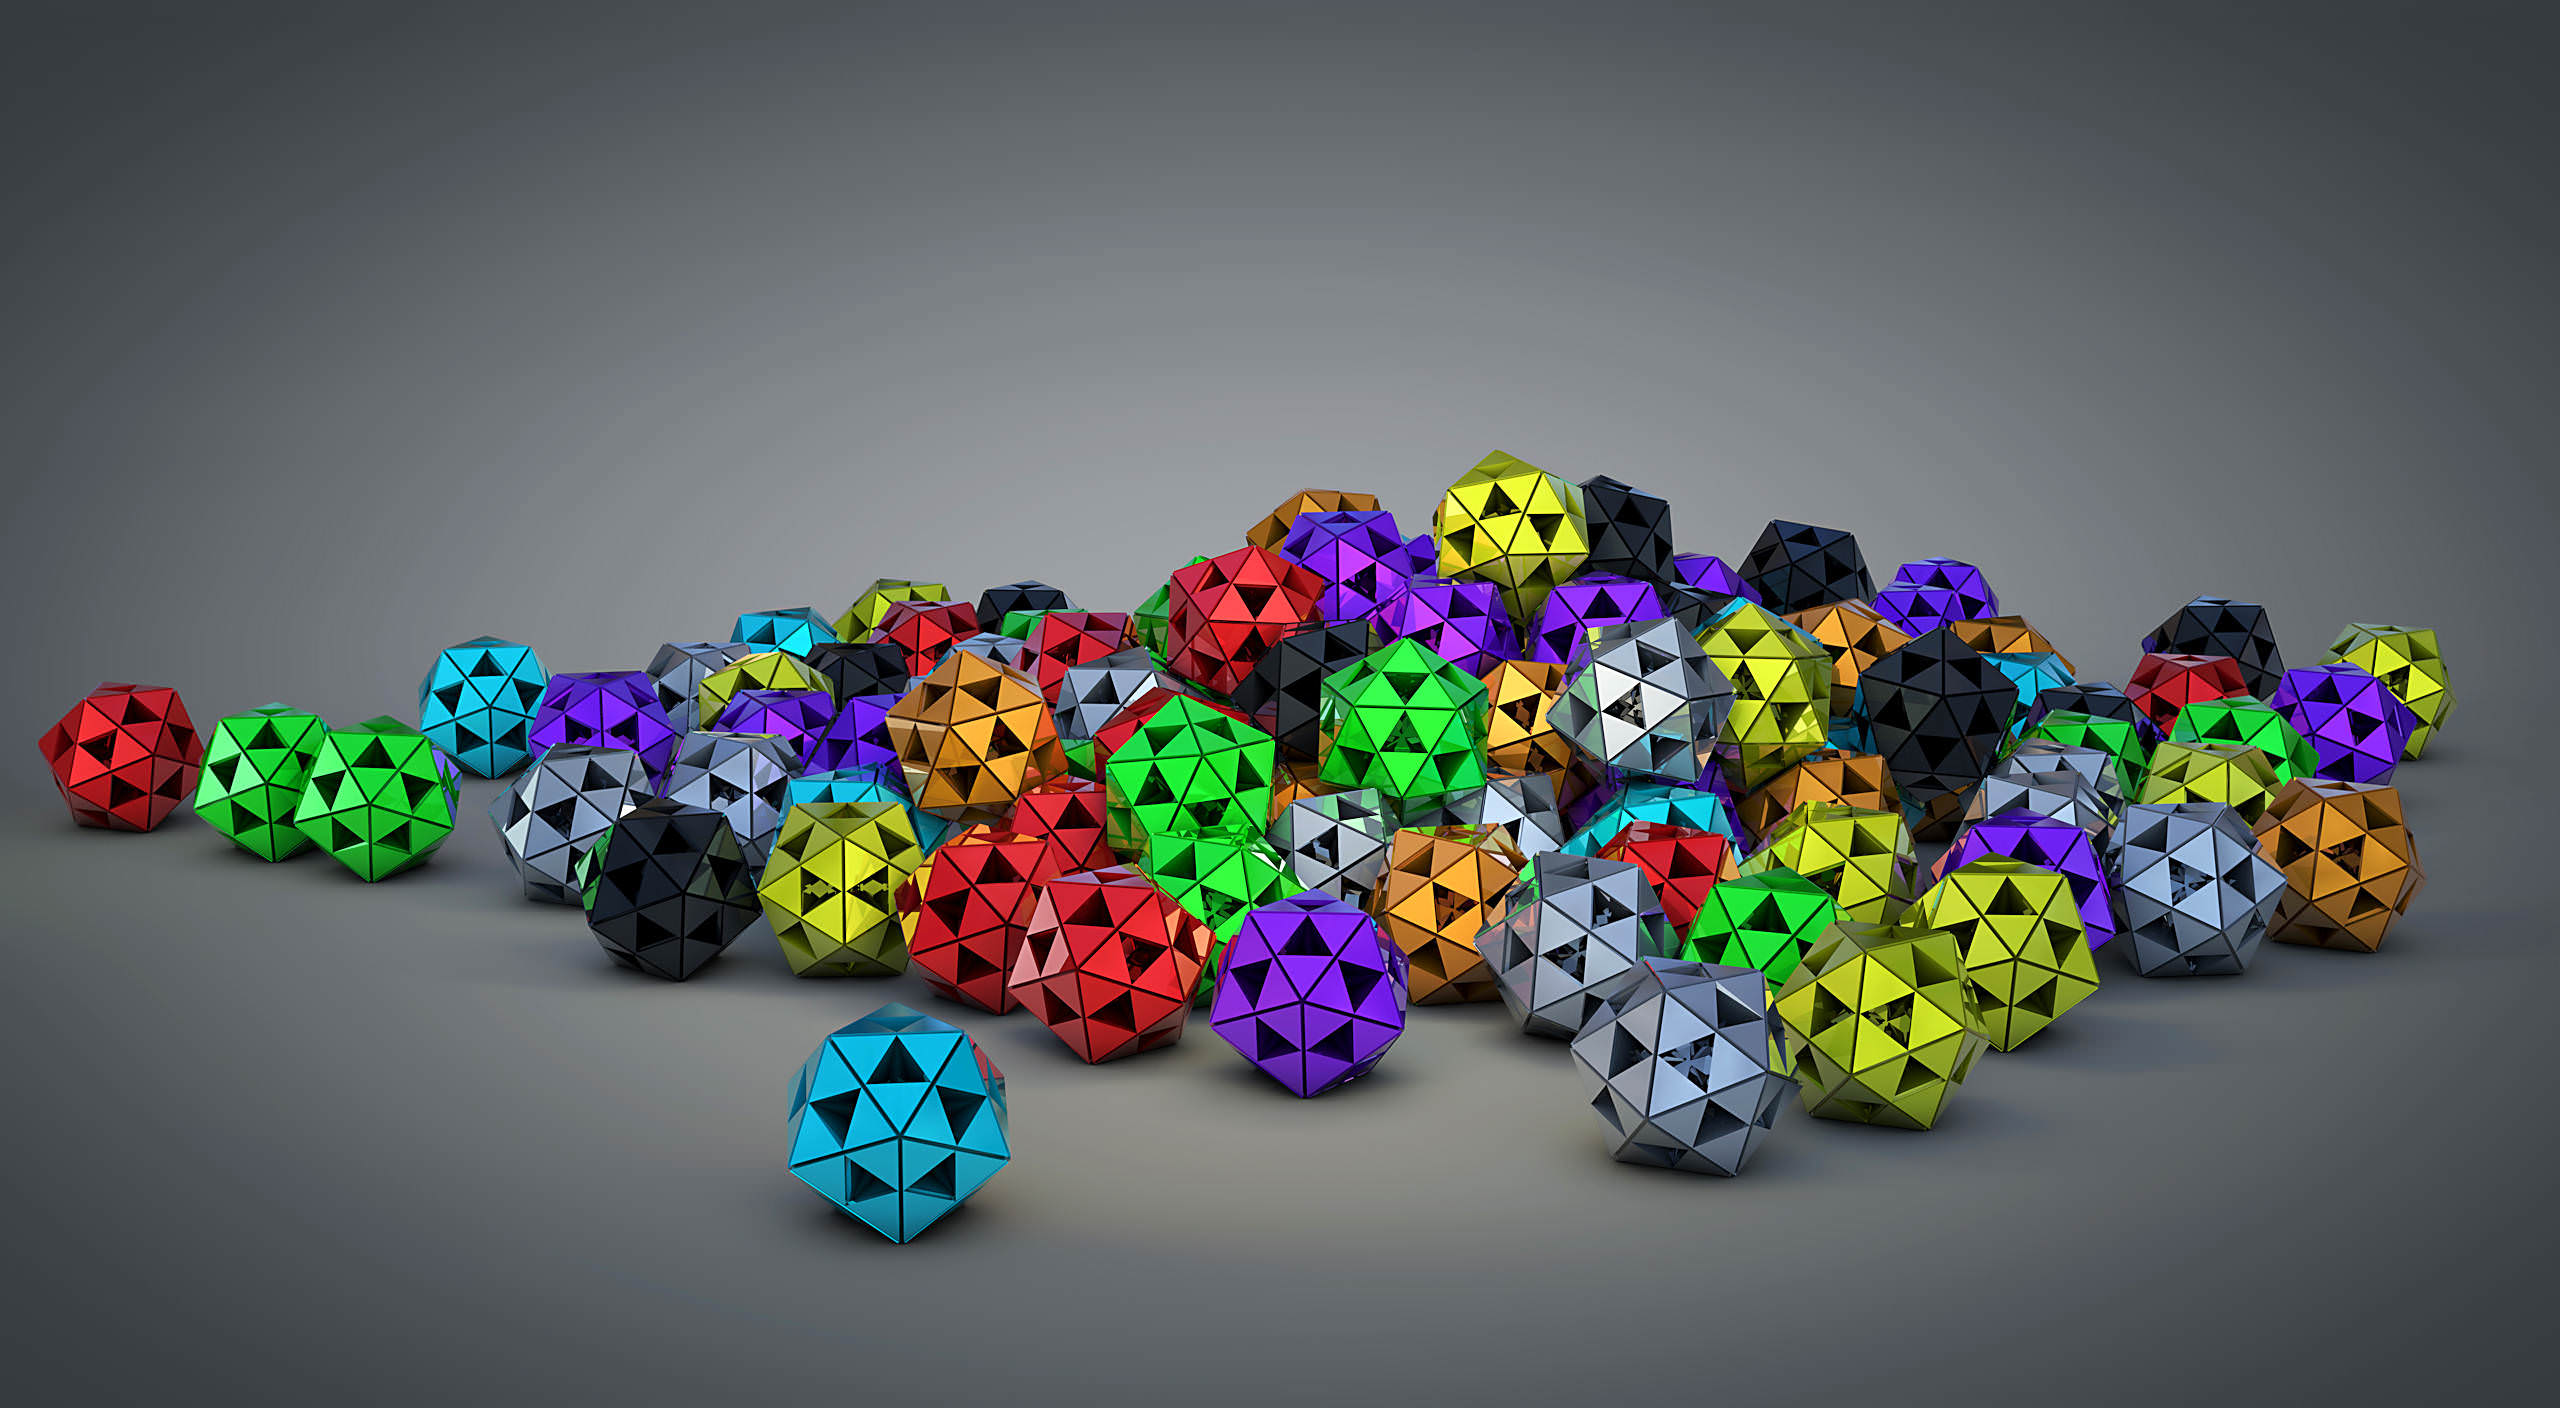 21+ colorful 3d wallpapers, backgrounds, images, pictures